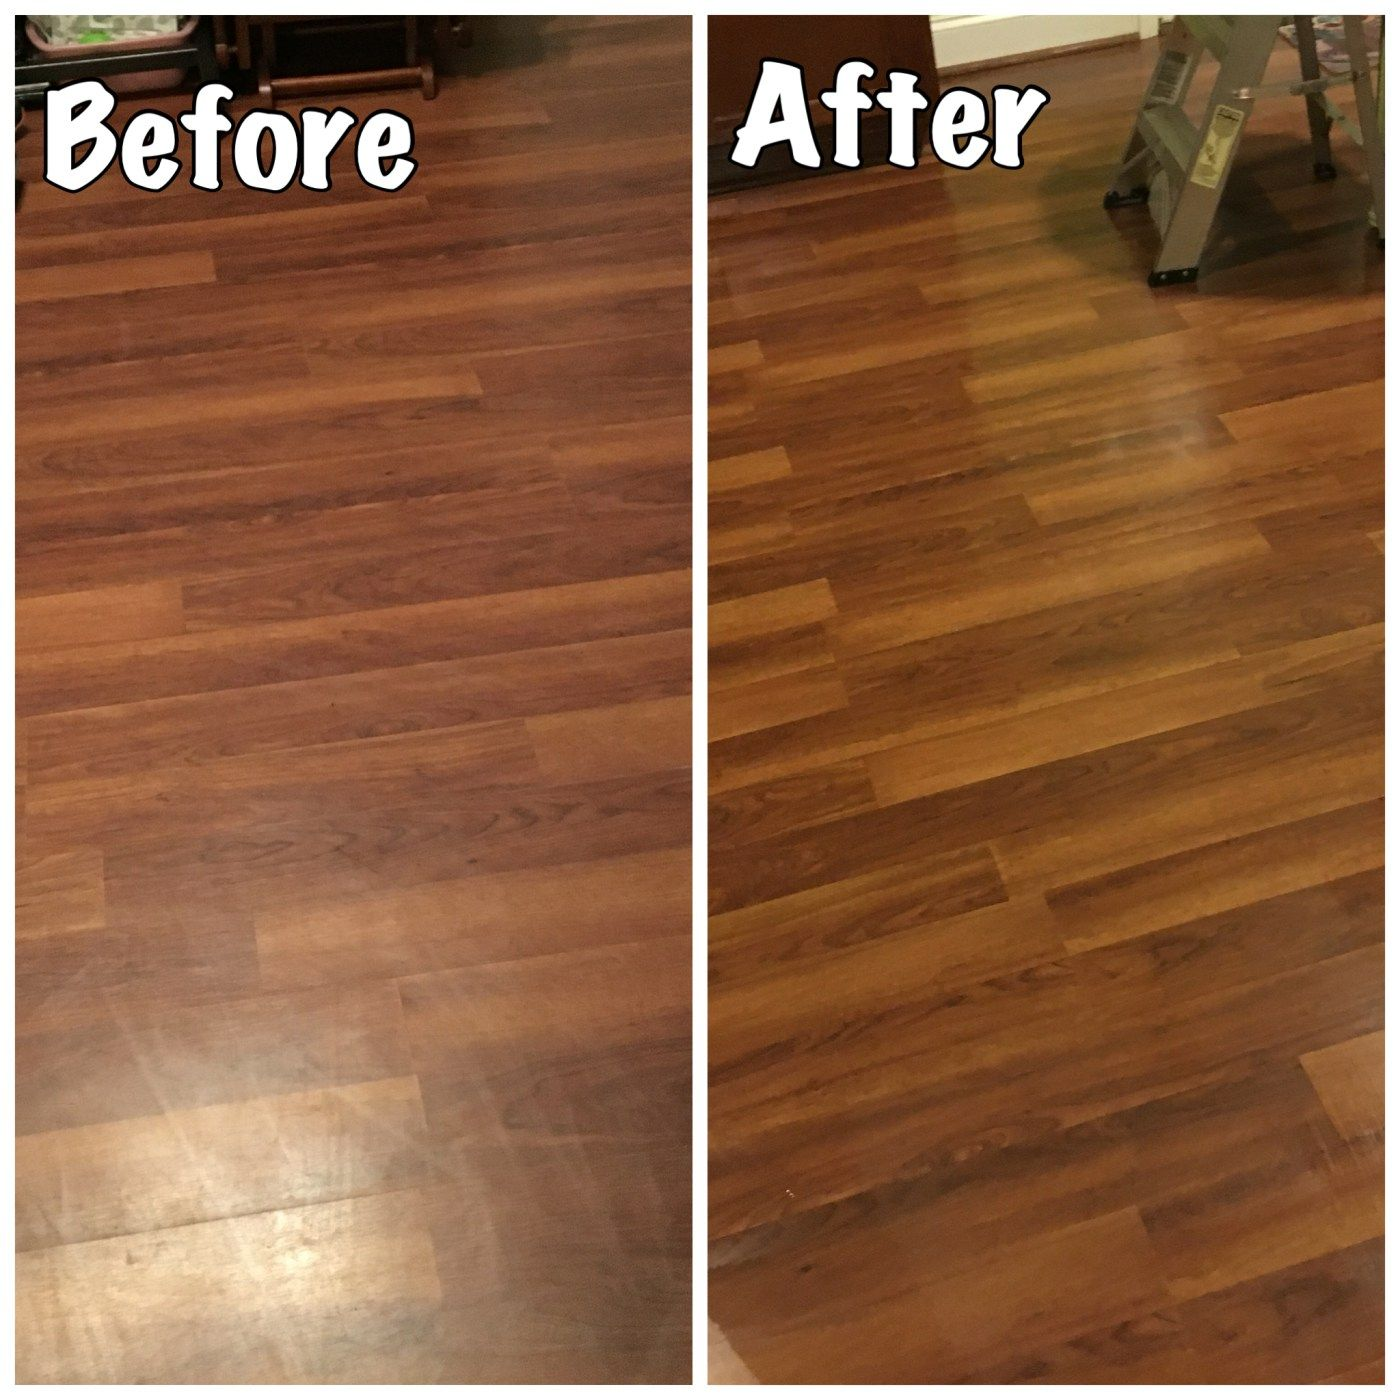 Laminate Floors Make Them Shine Again Honeysuckle Footprints Cleaning Wood Floors Laminate Flooring Cleaner Wood Laminate Flooring